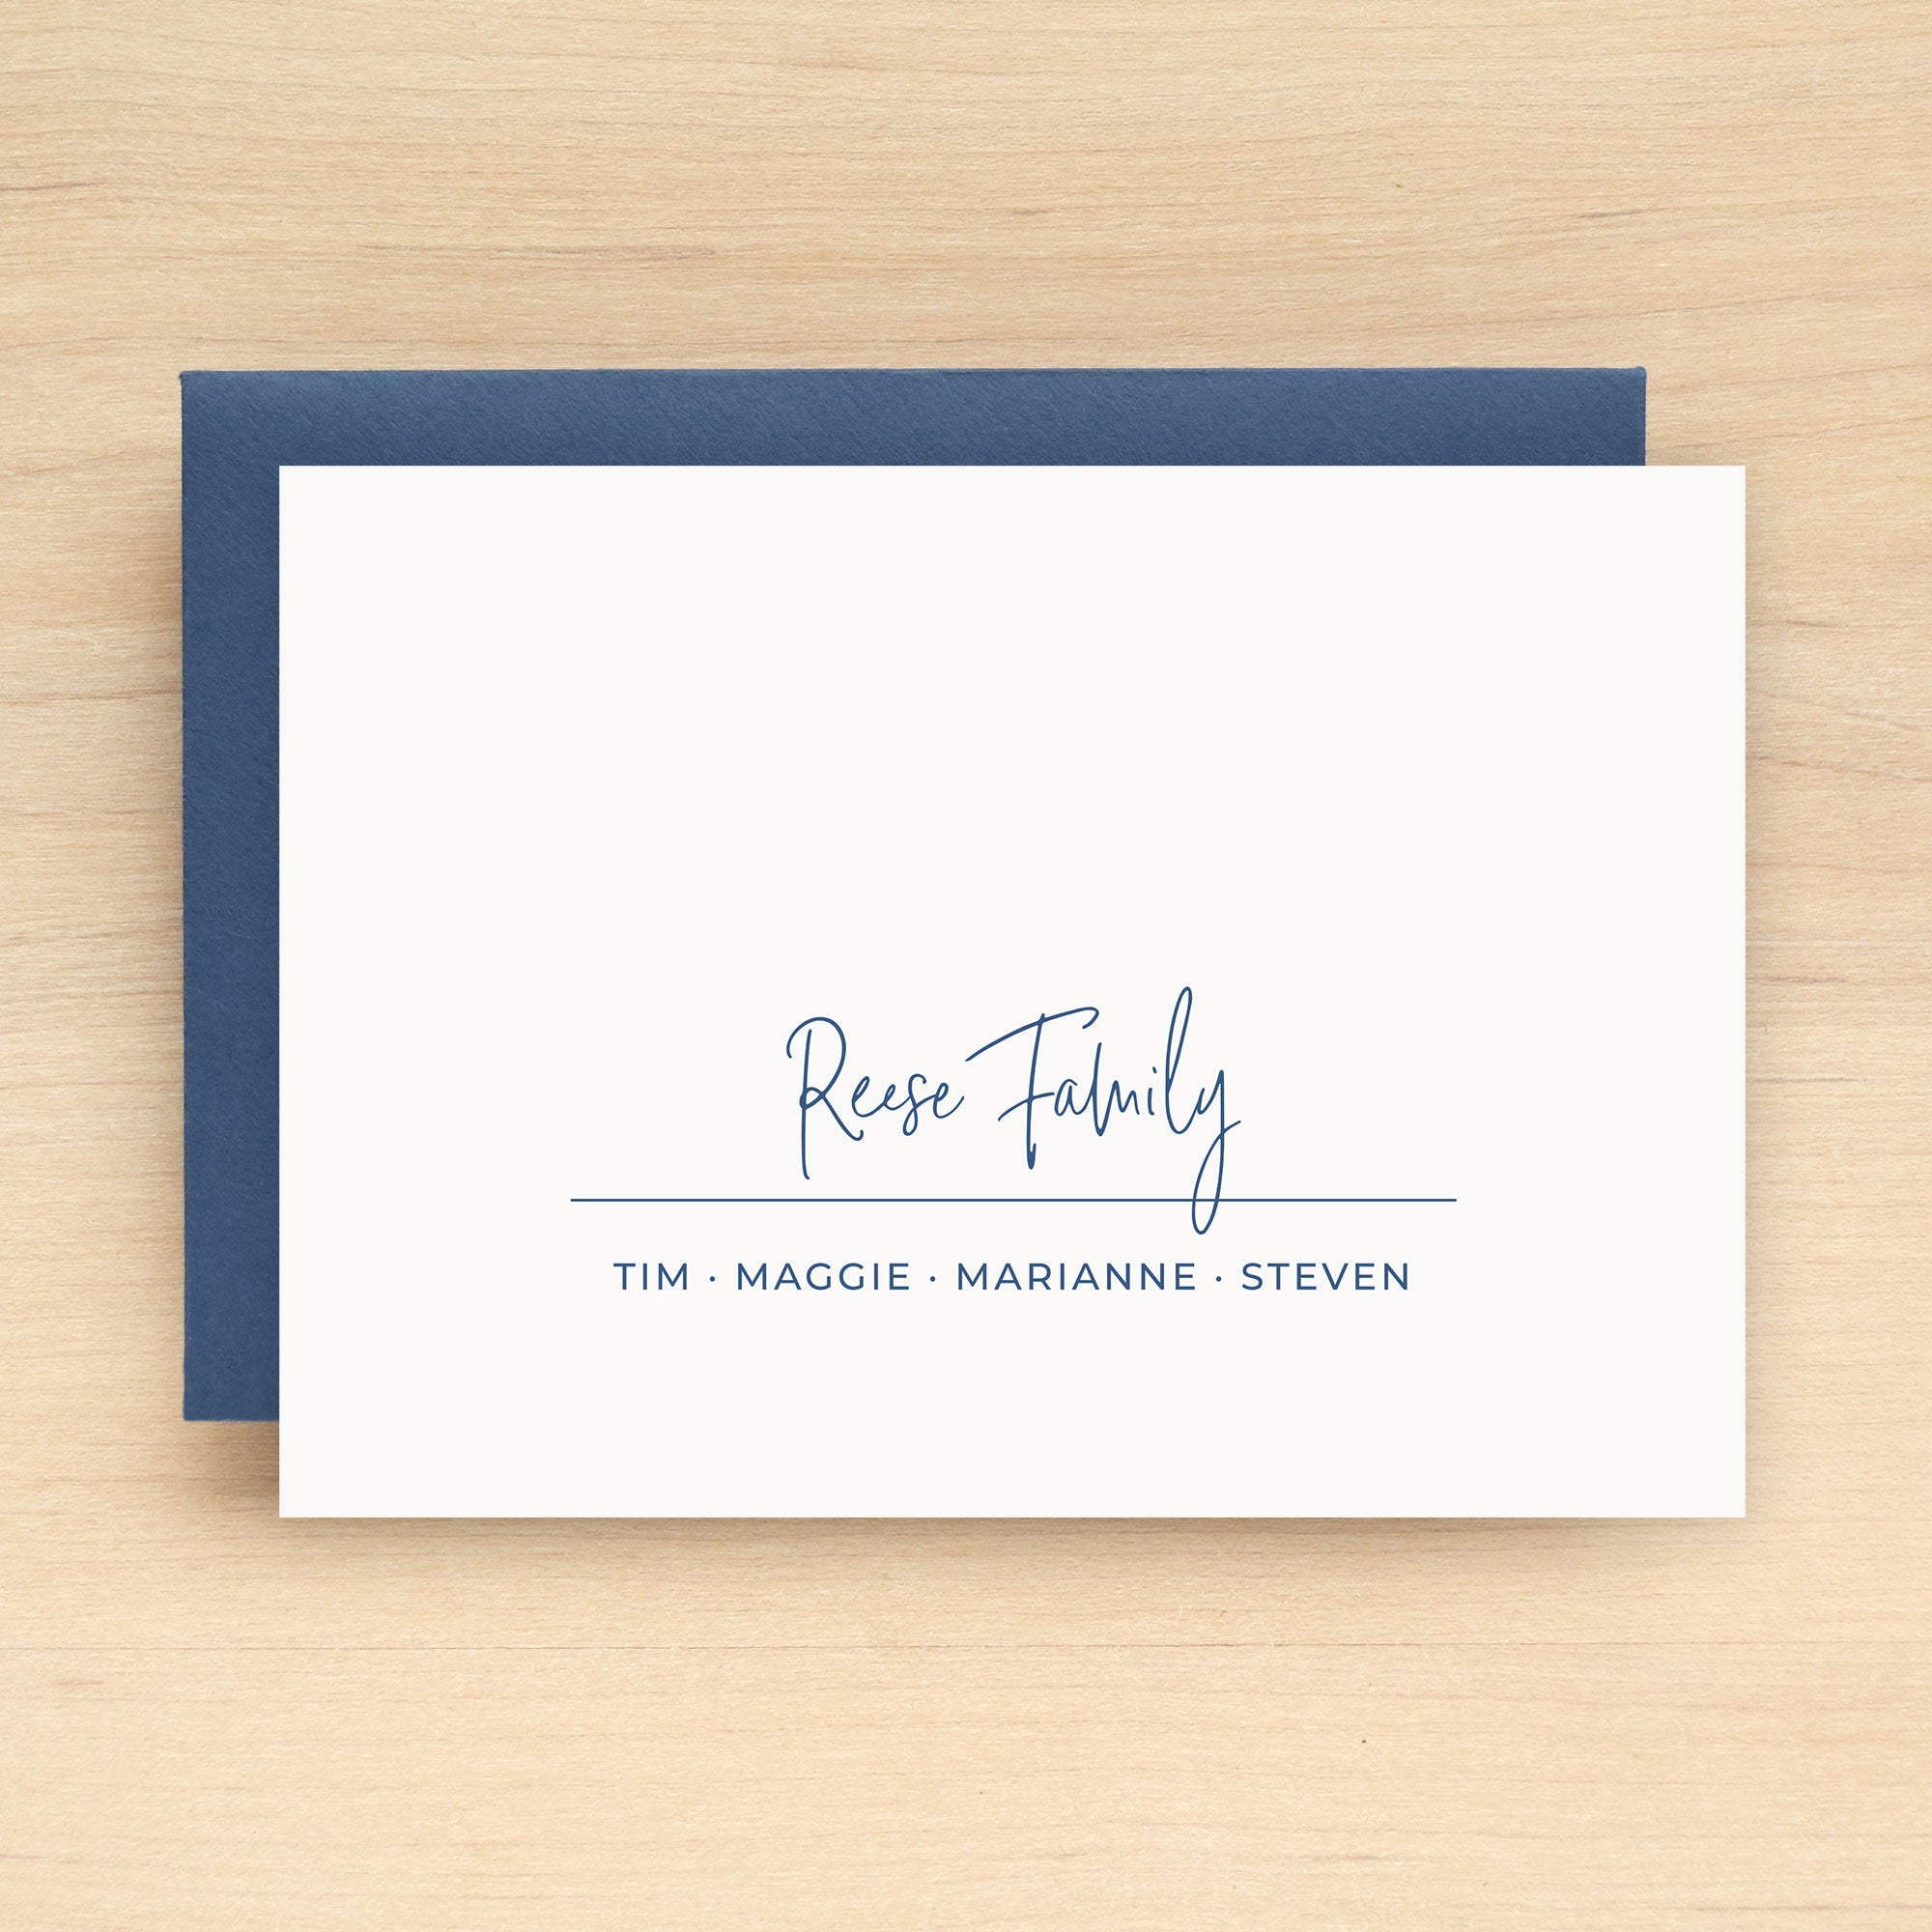 Suite Family Personalized Stationery Set